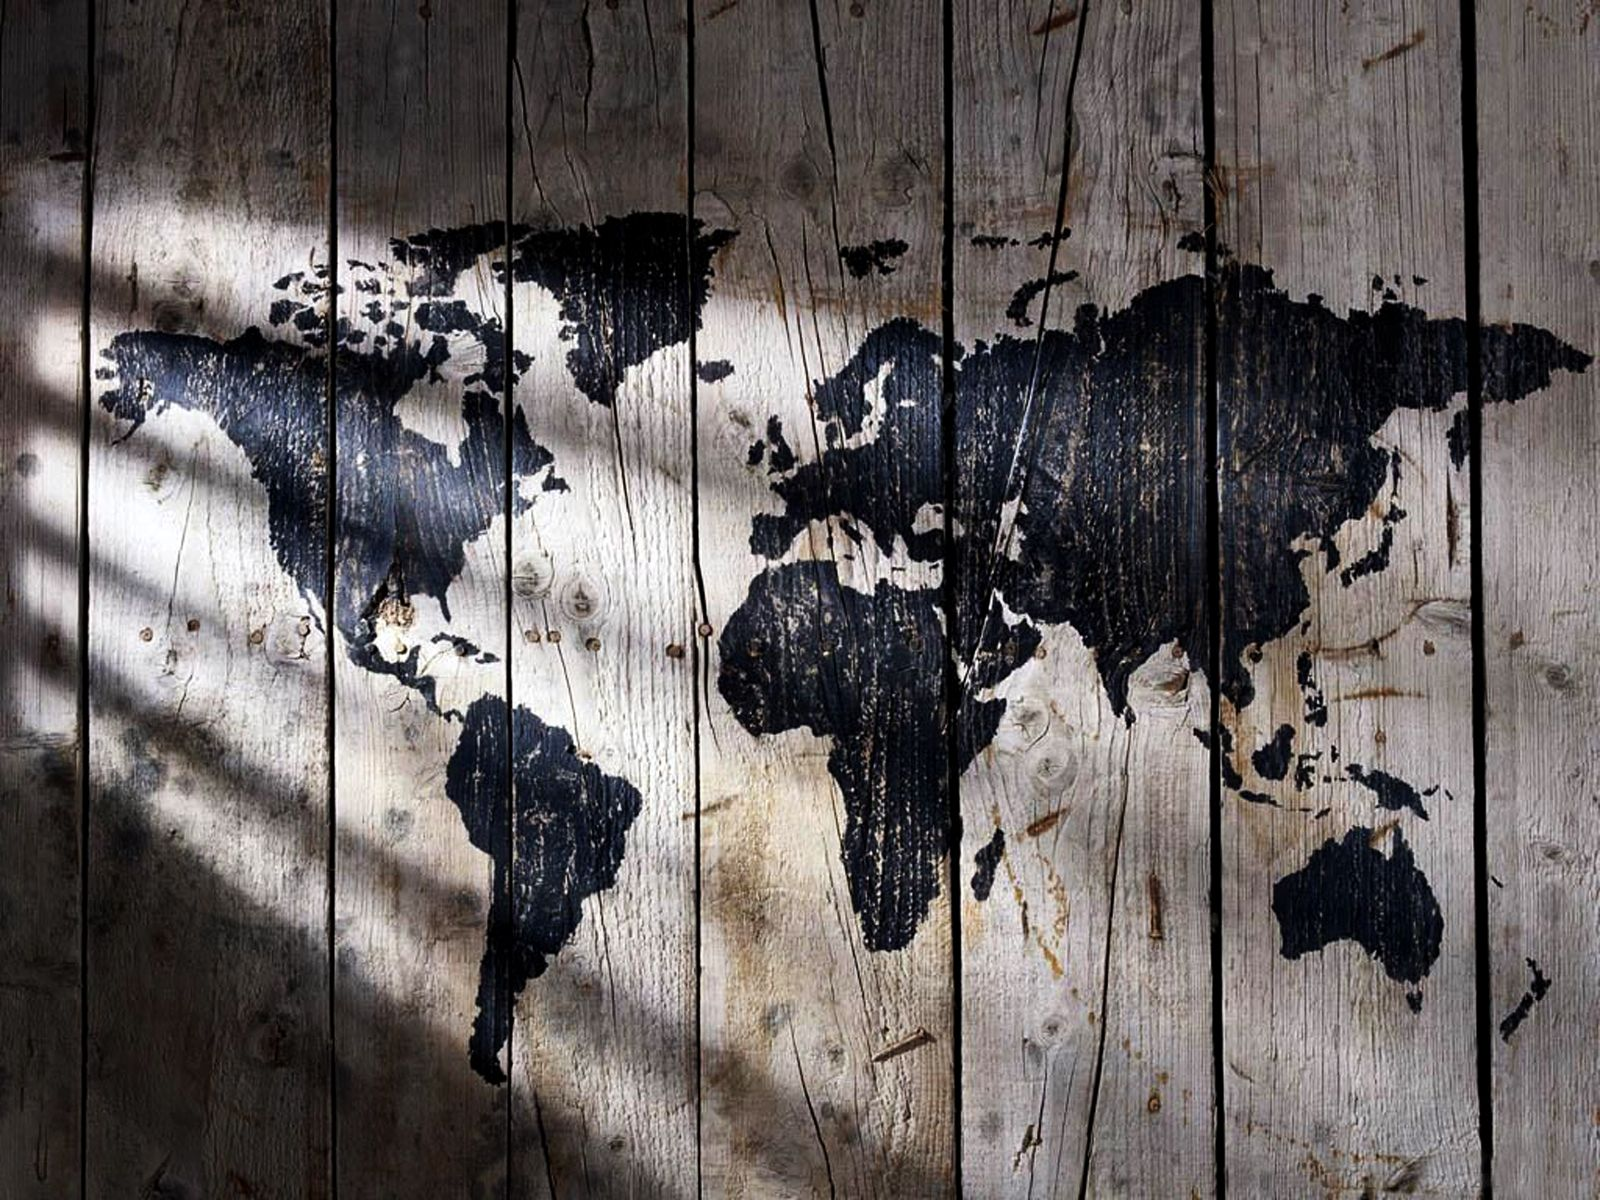 Creative world map wallpaper drm land world map on your walls world map painted on wood texture lights and shadows hd wallpaper gumiabroncs Image collections